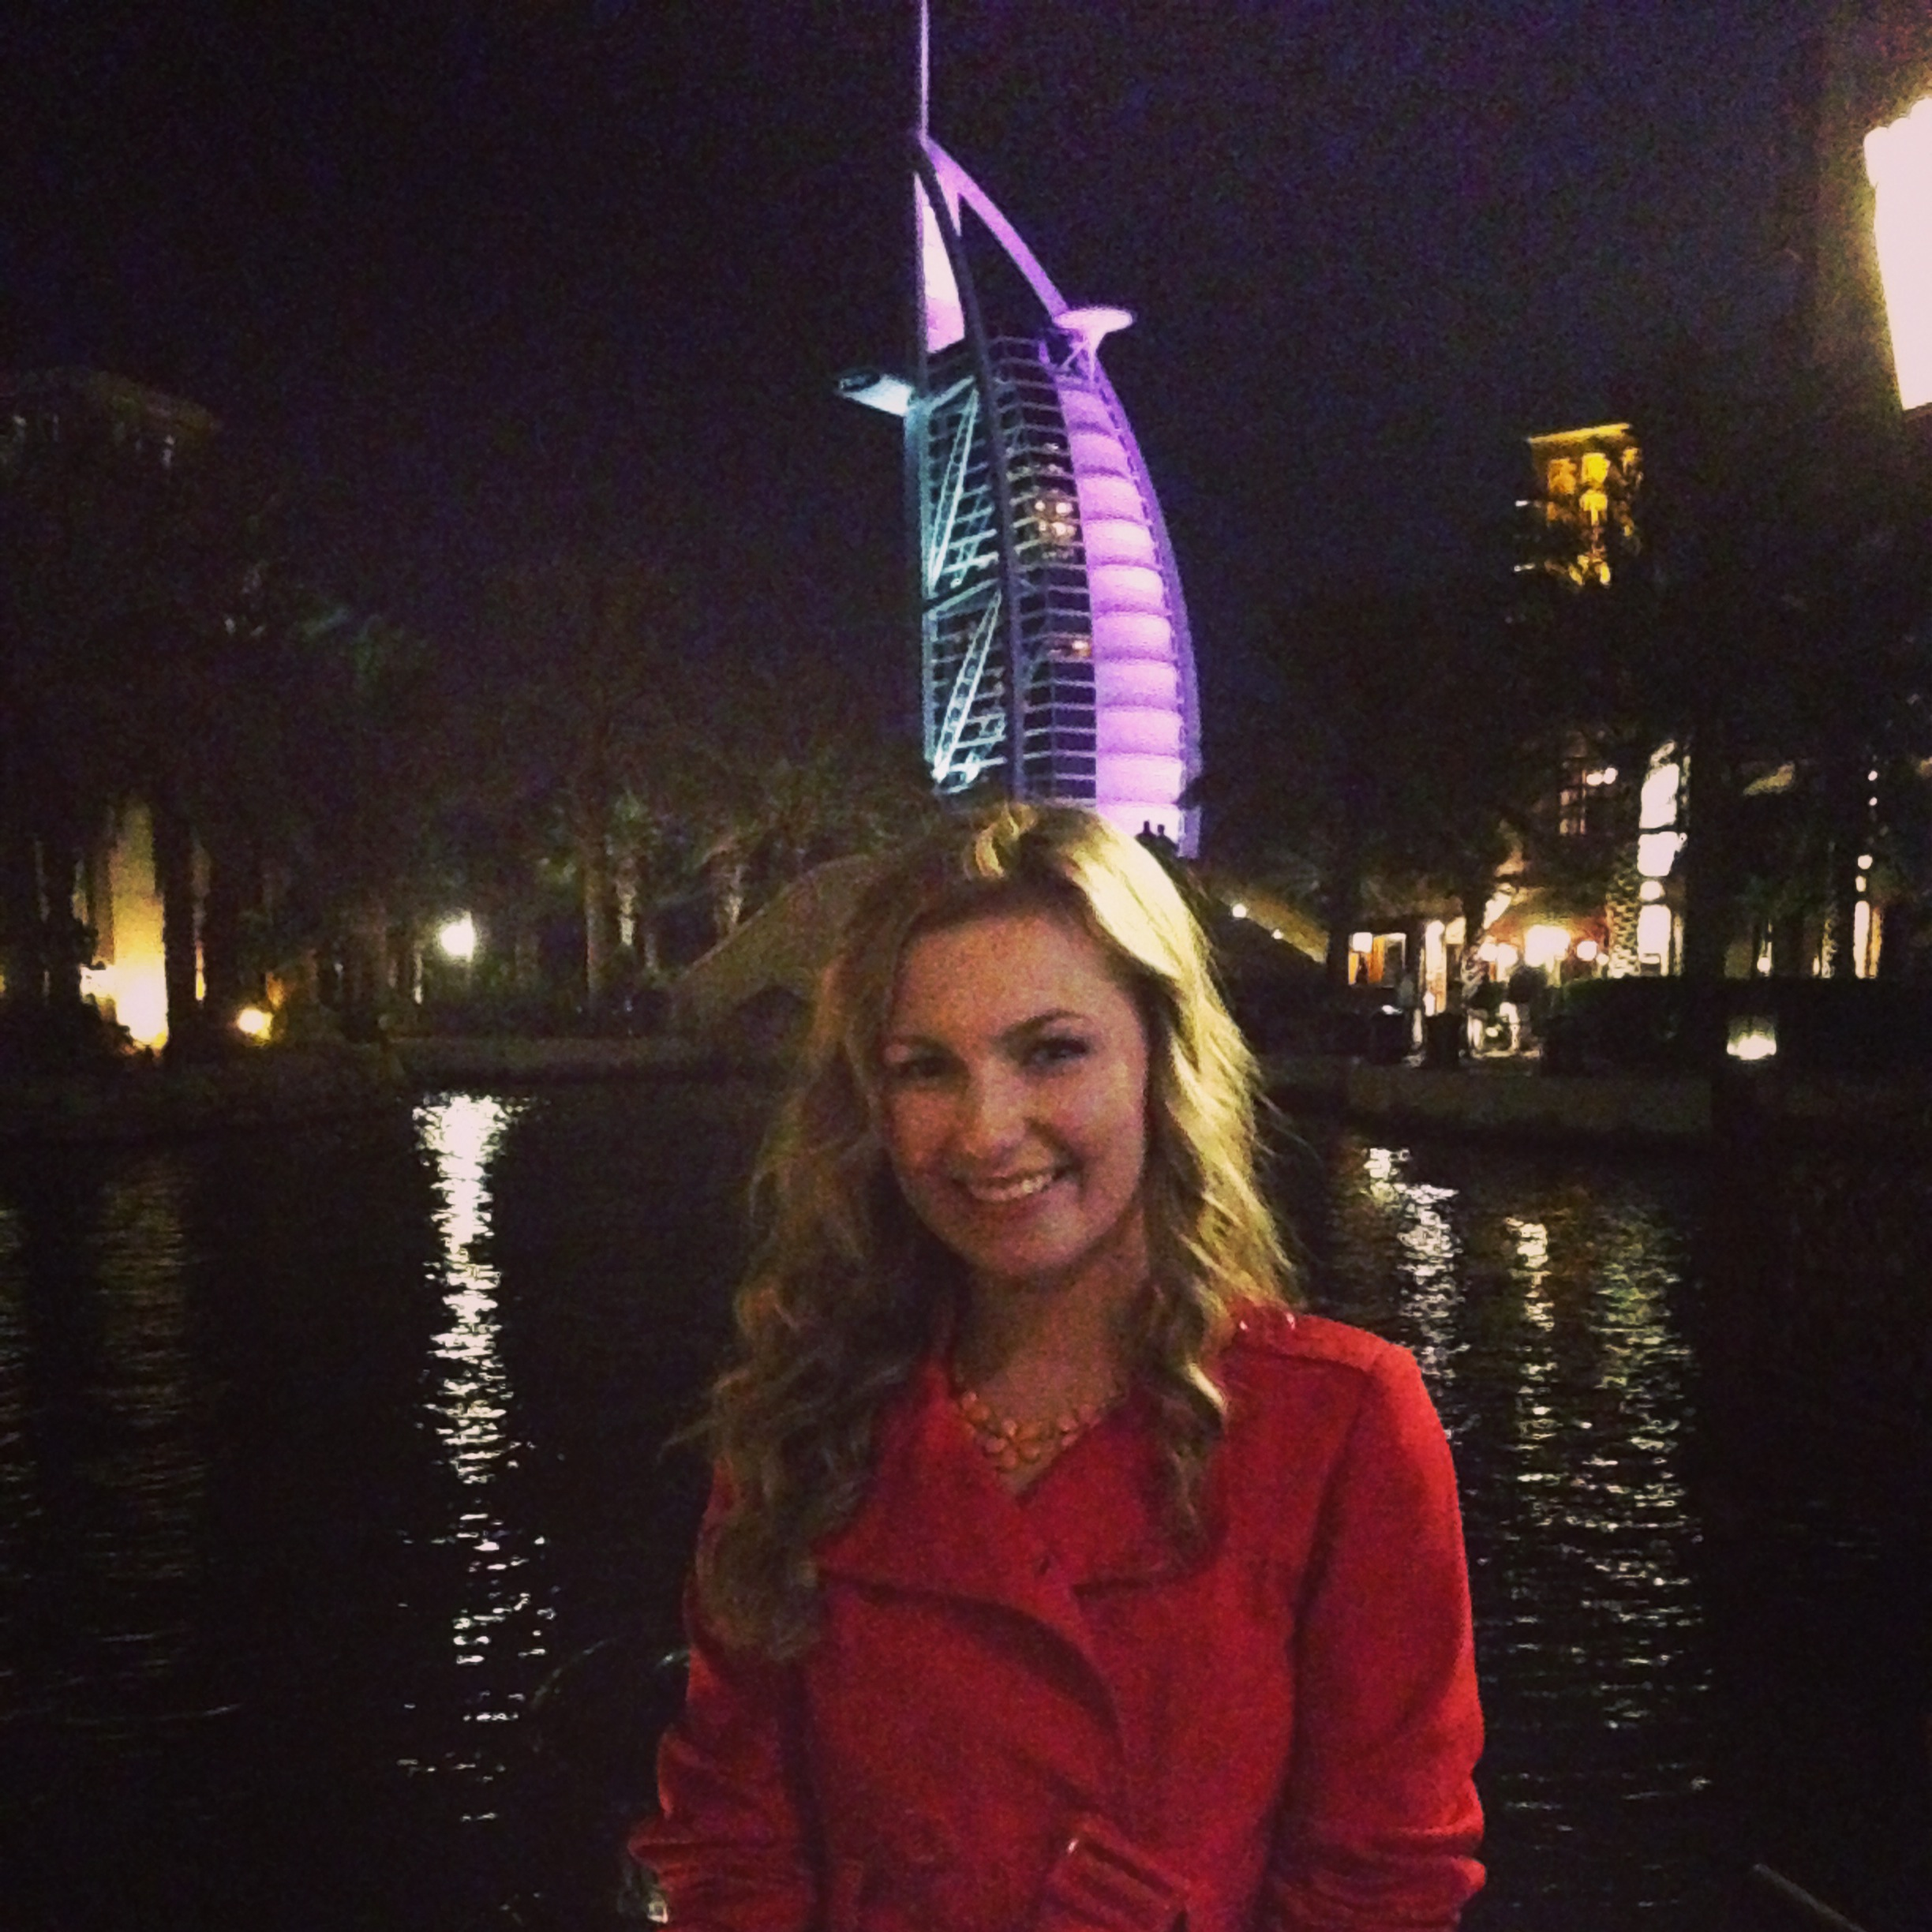 Obligatory tourist pic with the Burj Al Arab.